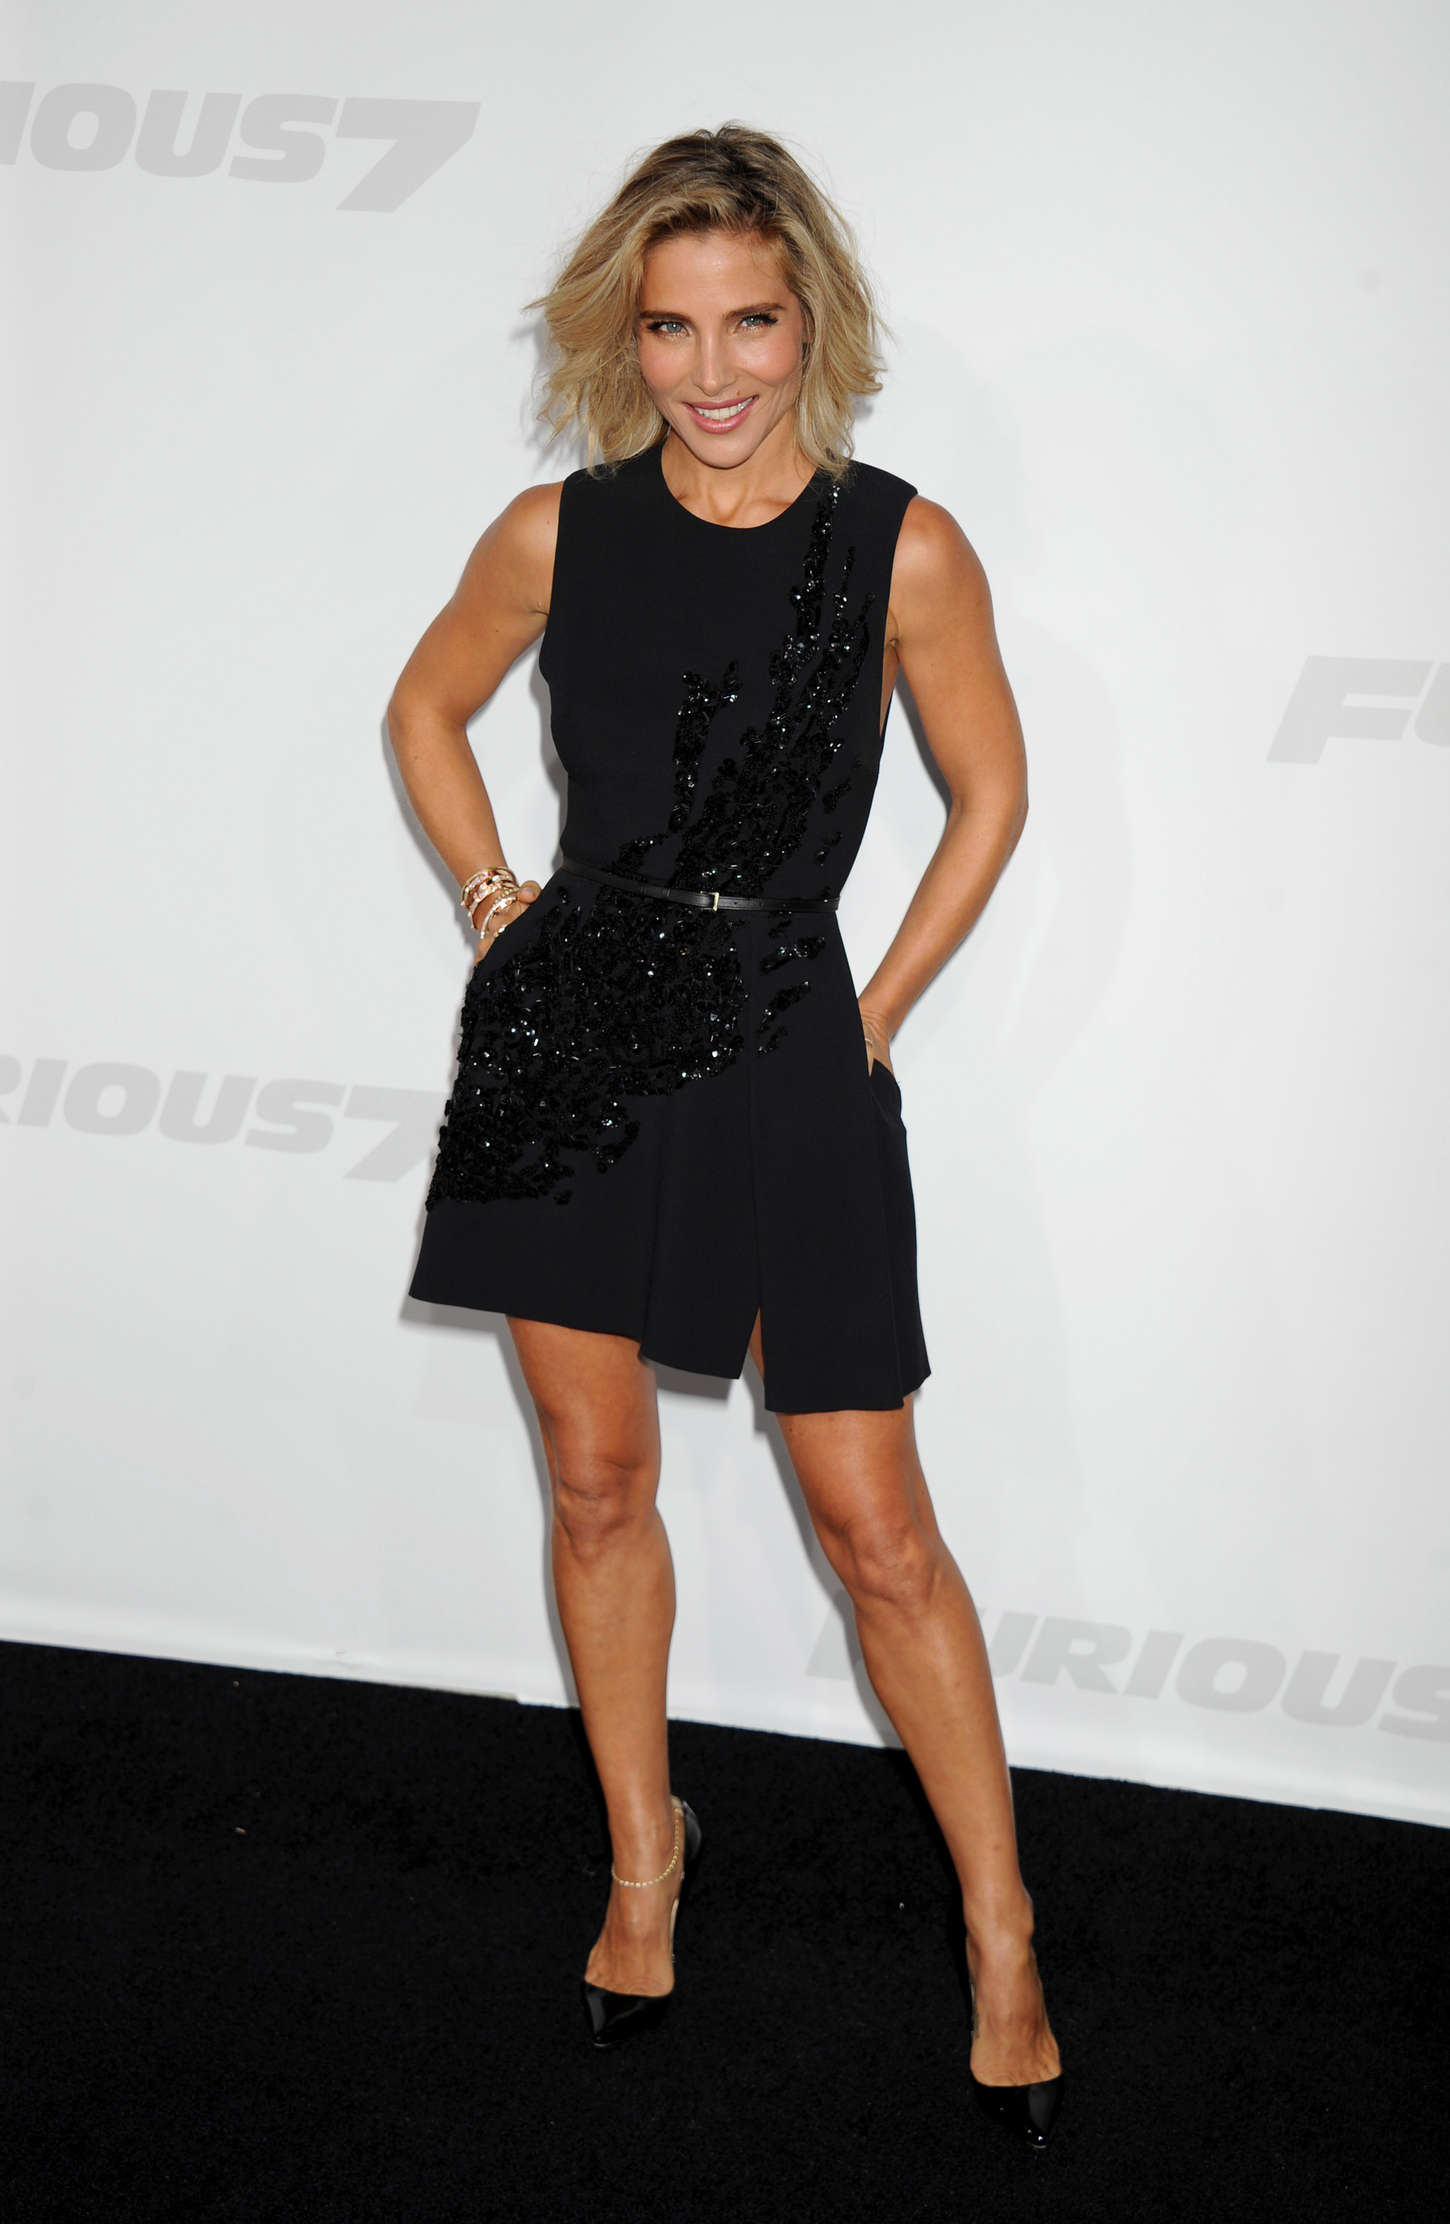 Elsa Pataky Furious Premiere in Los Angeles